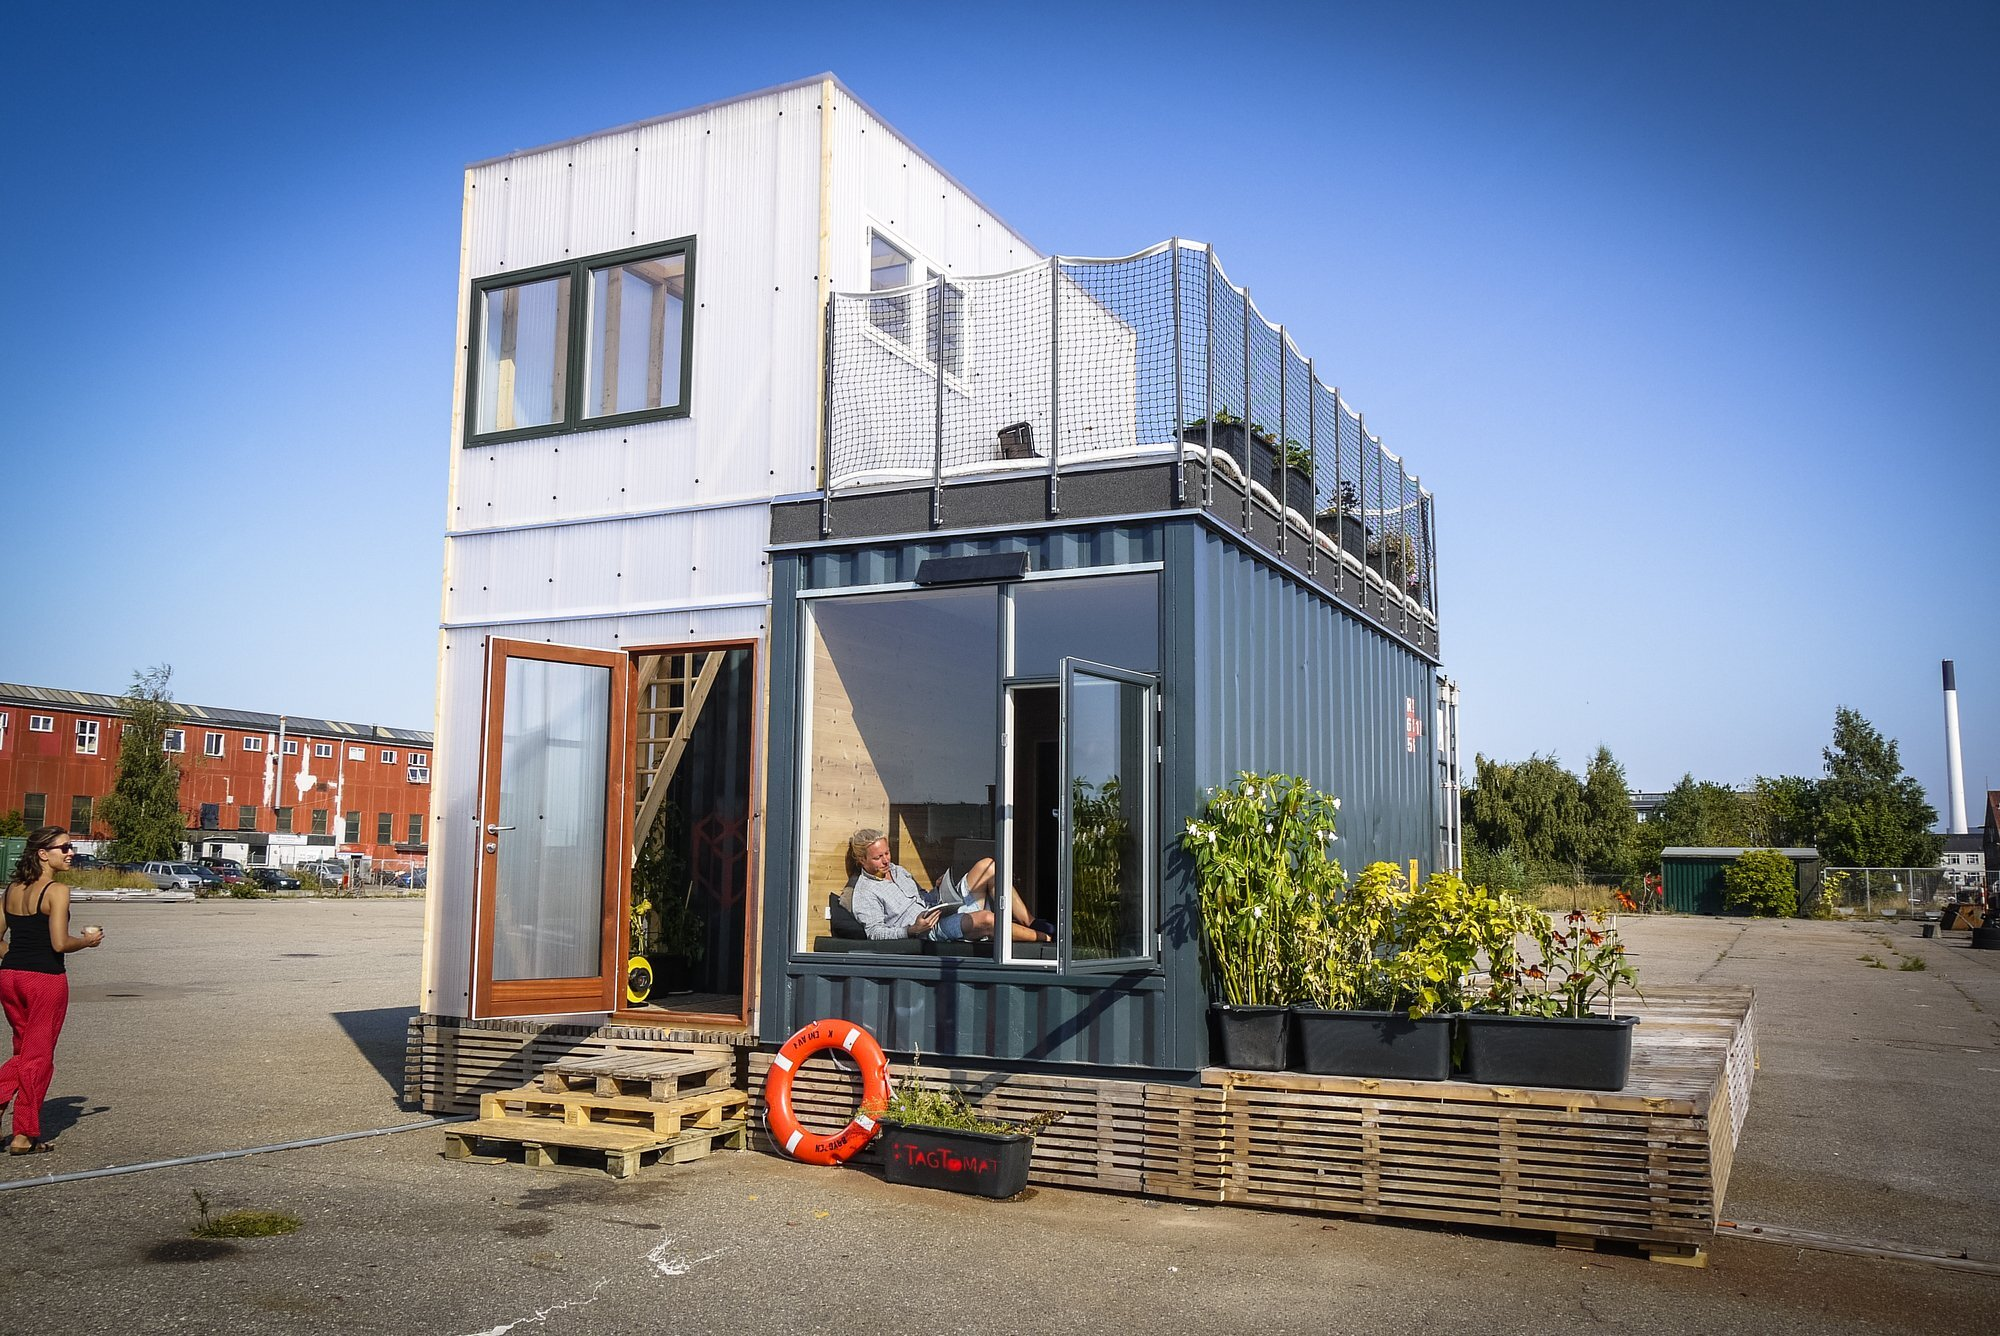 Container Haus Irland Container Haus Tiny Home Tiny Houses